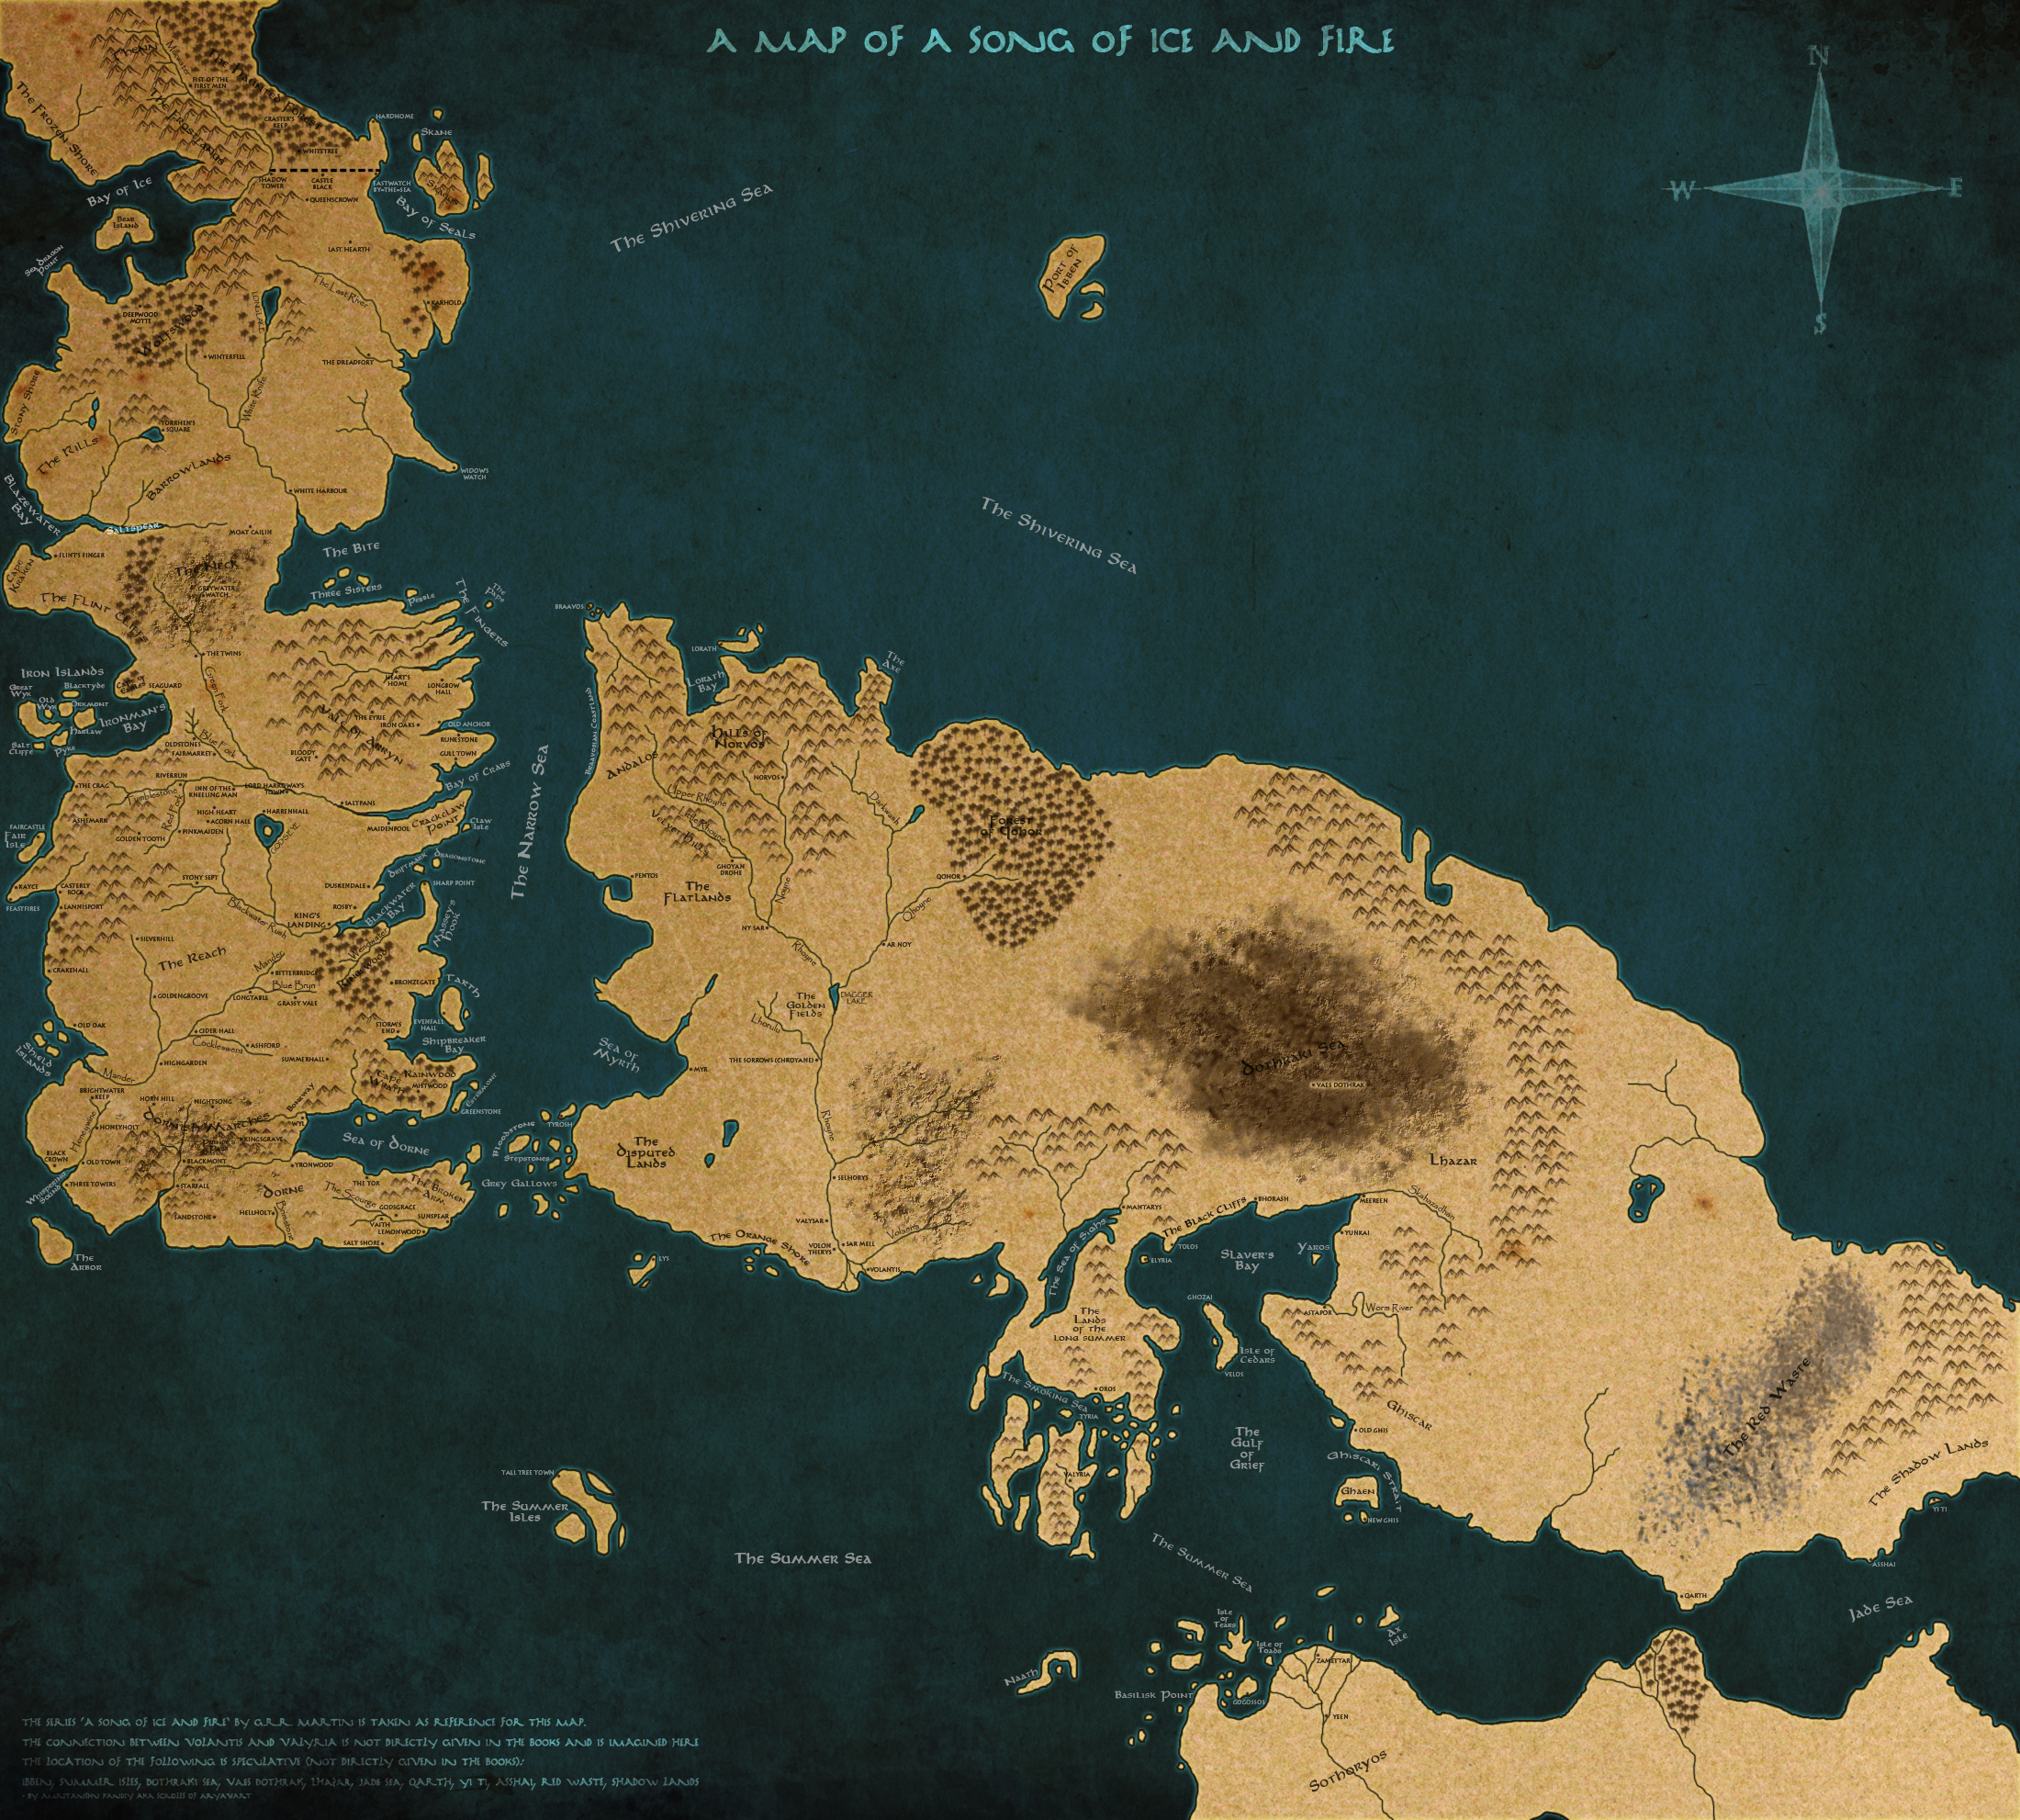 A Song Of Ice And Fire #9